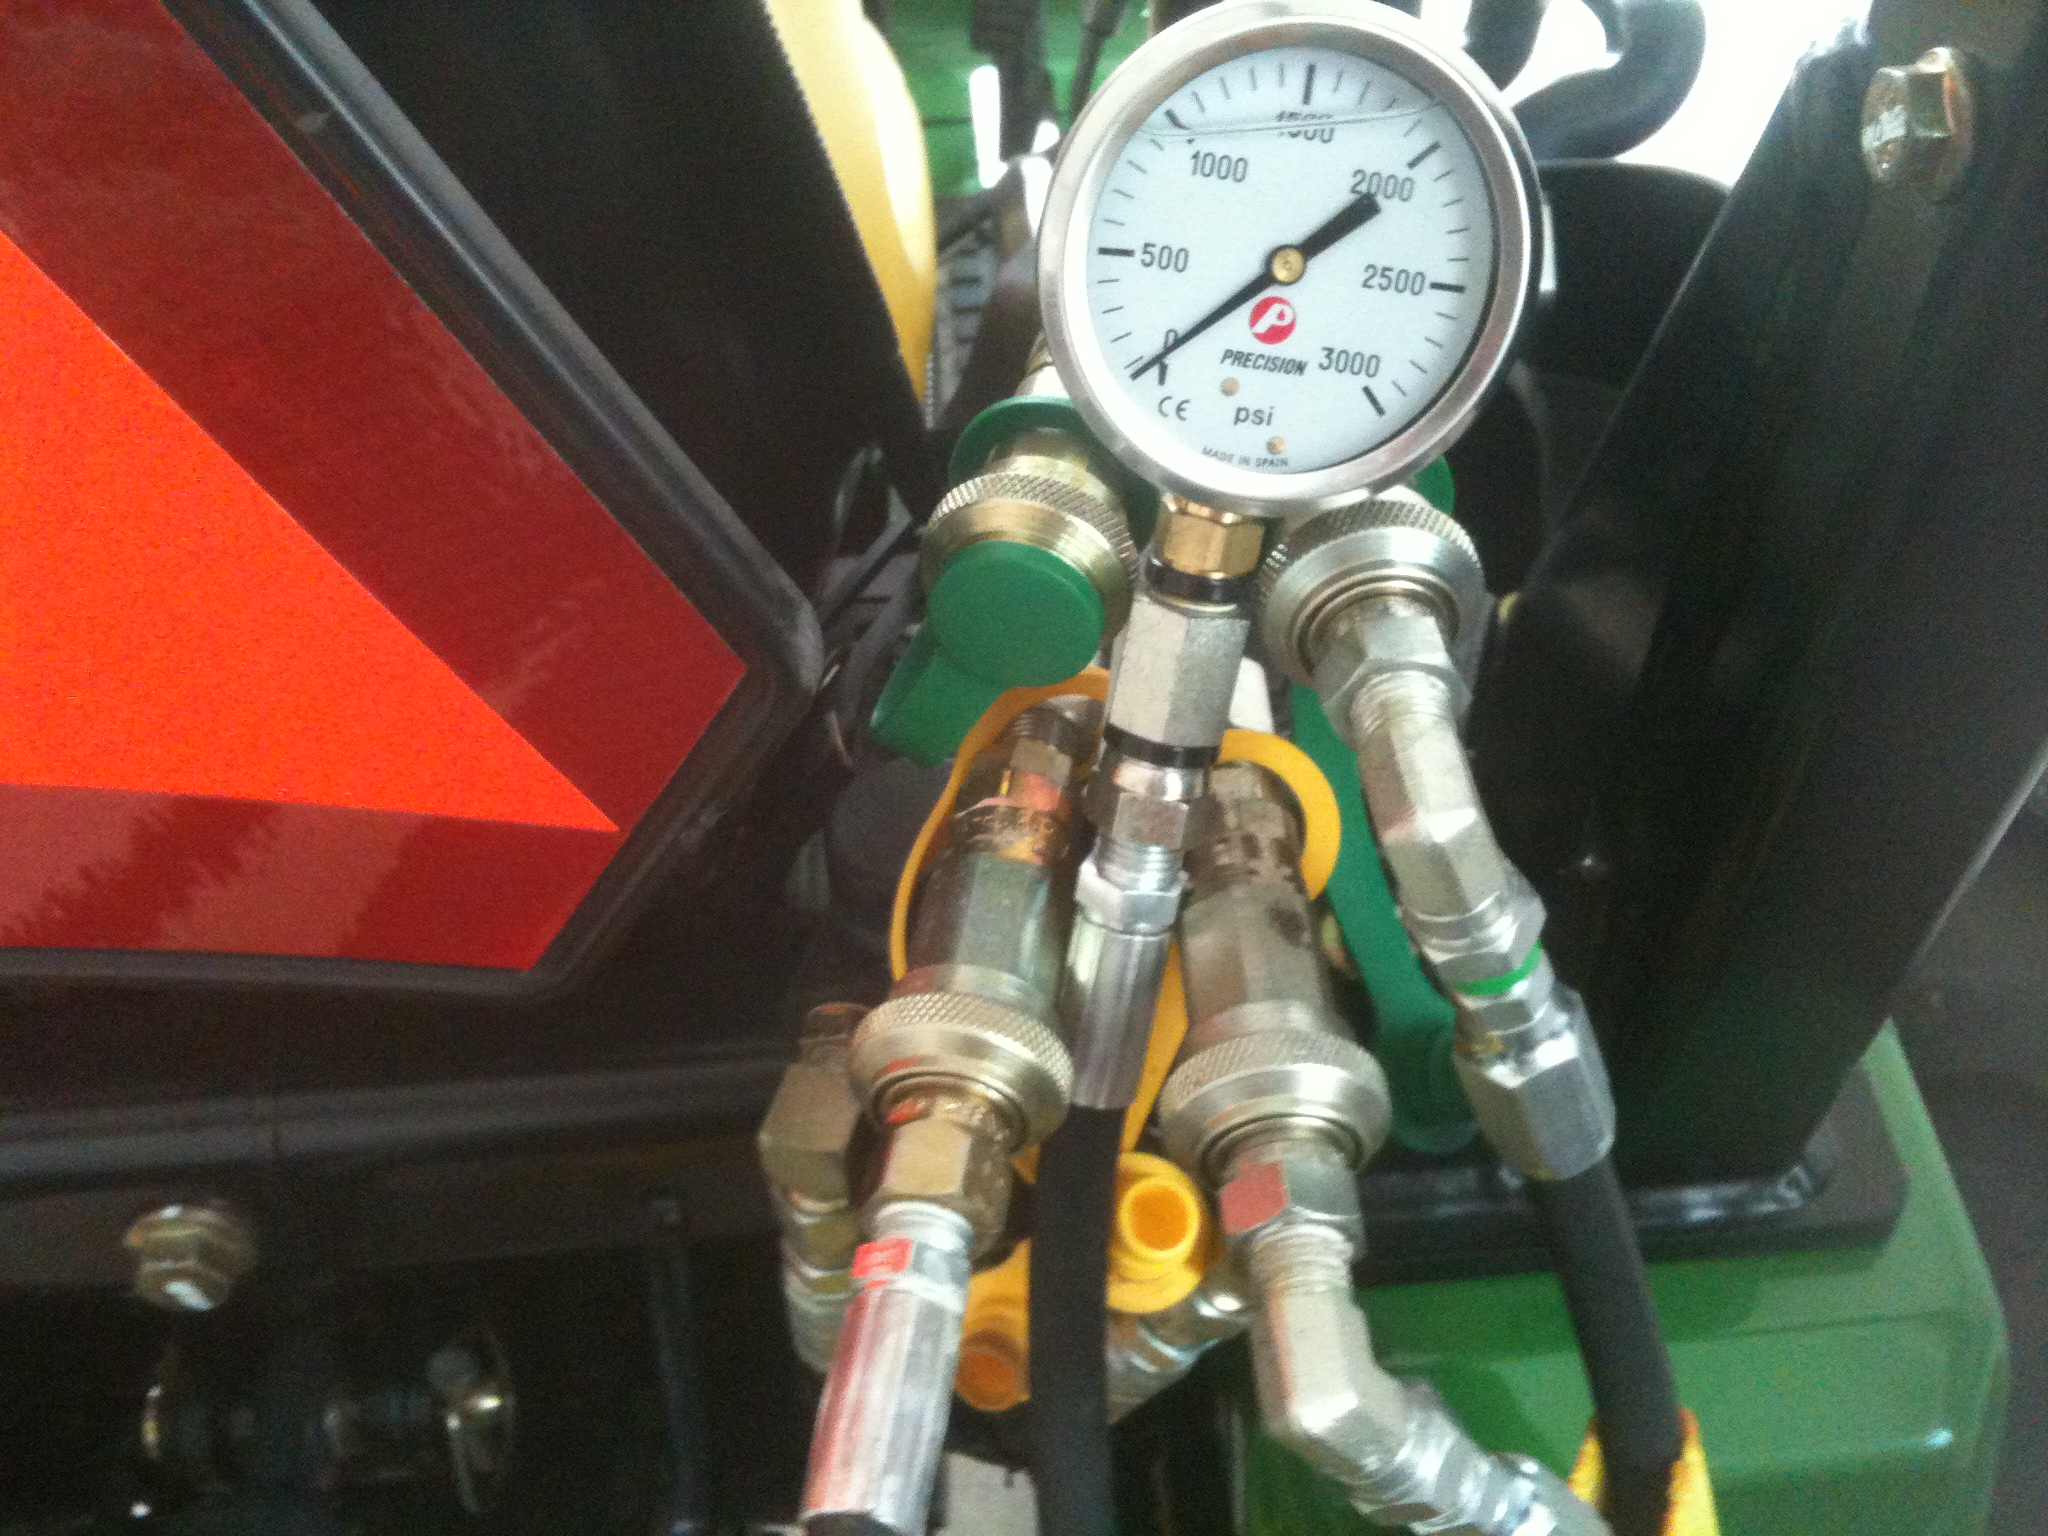 Checking/Verifiying the Hydraulic Pressure on your Tractor